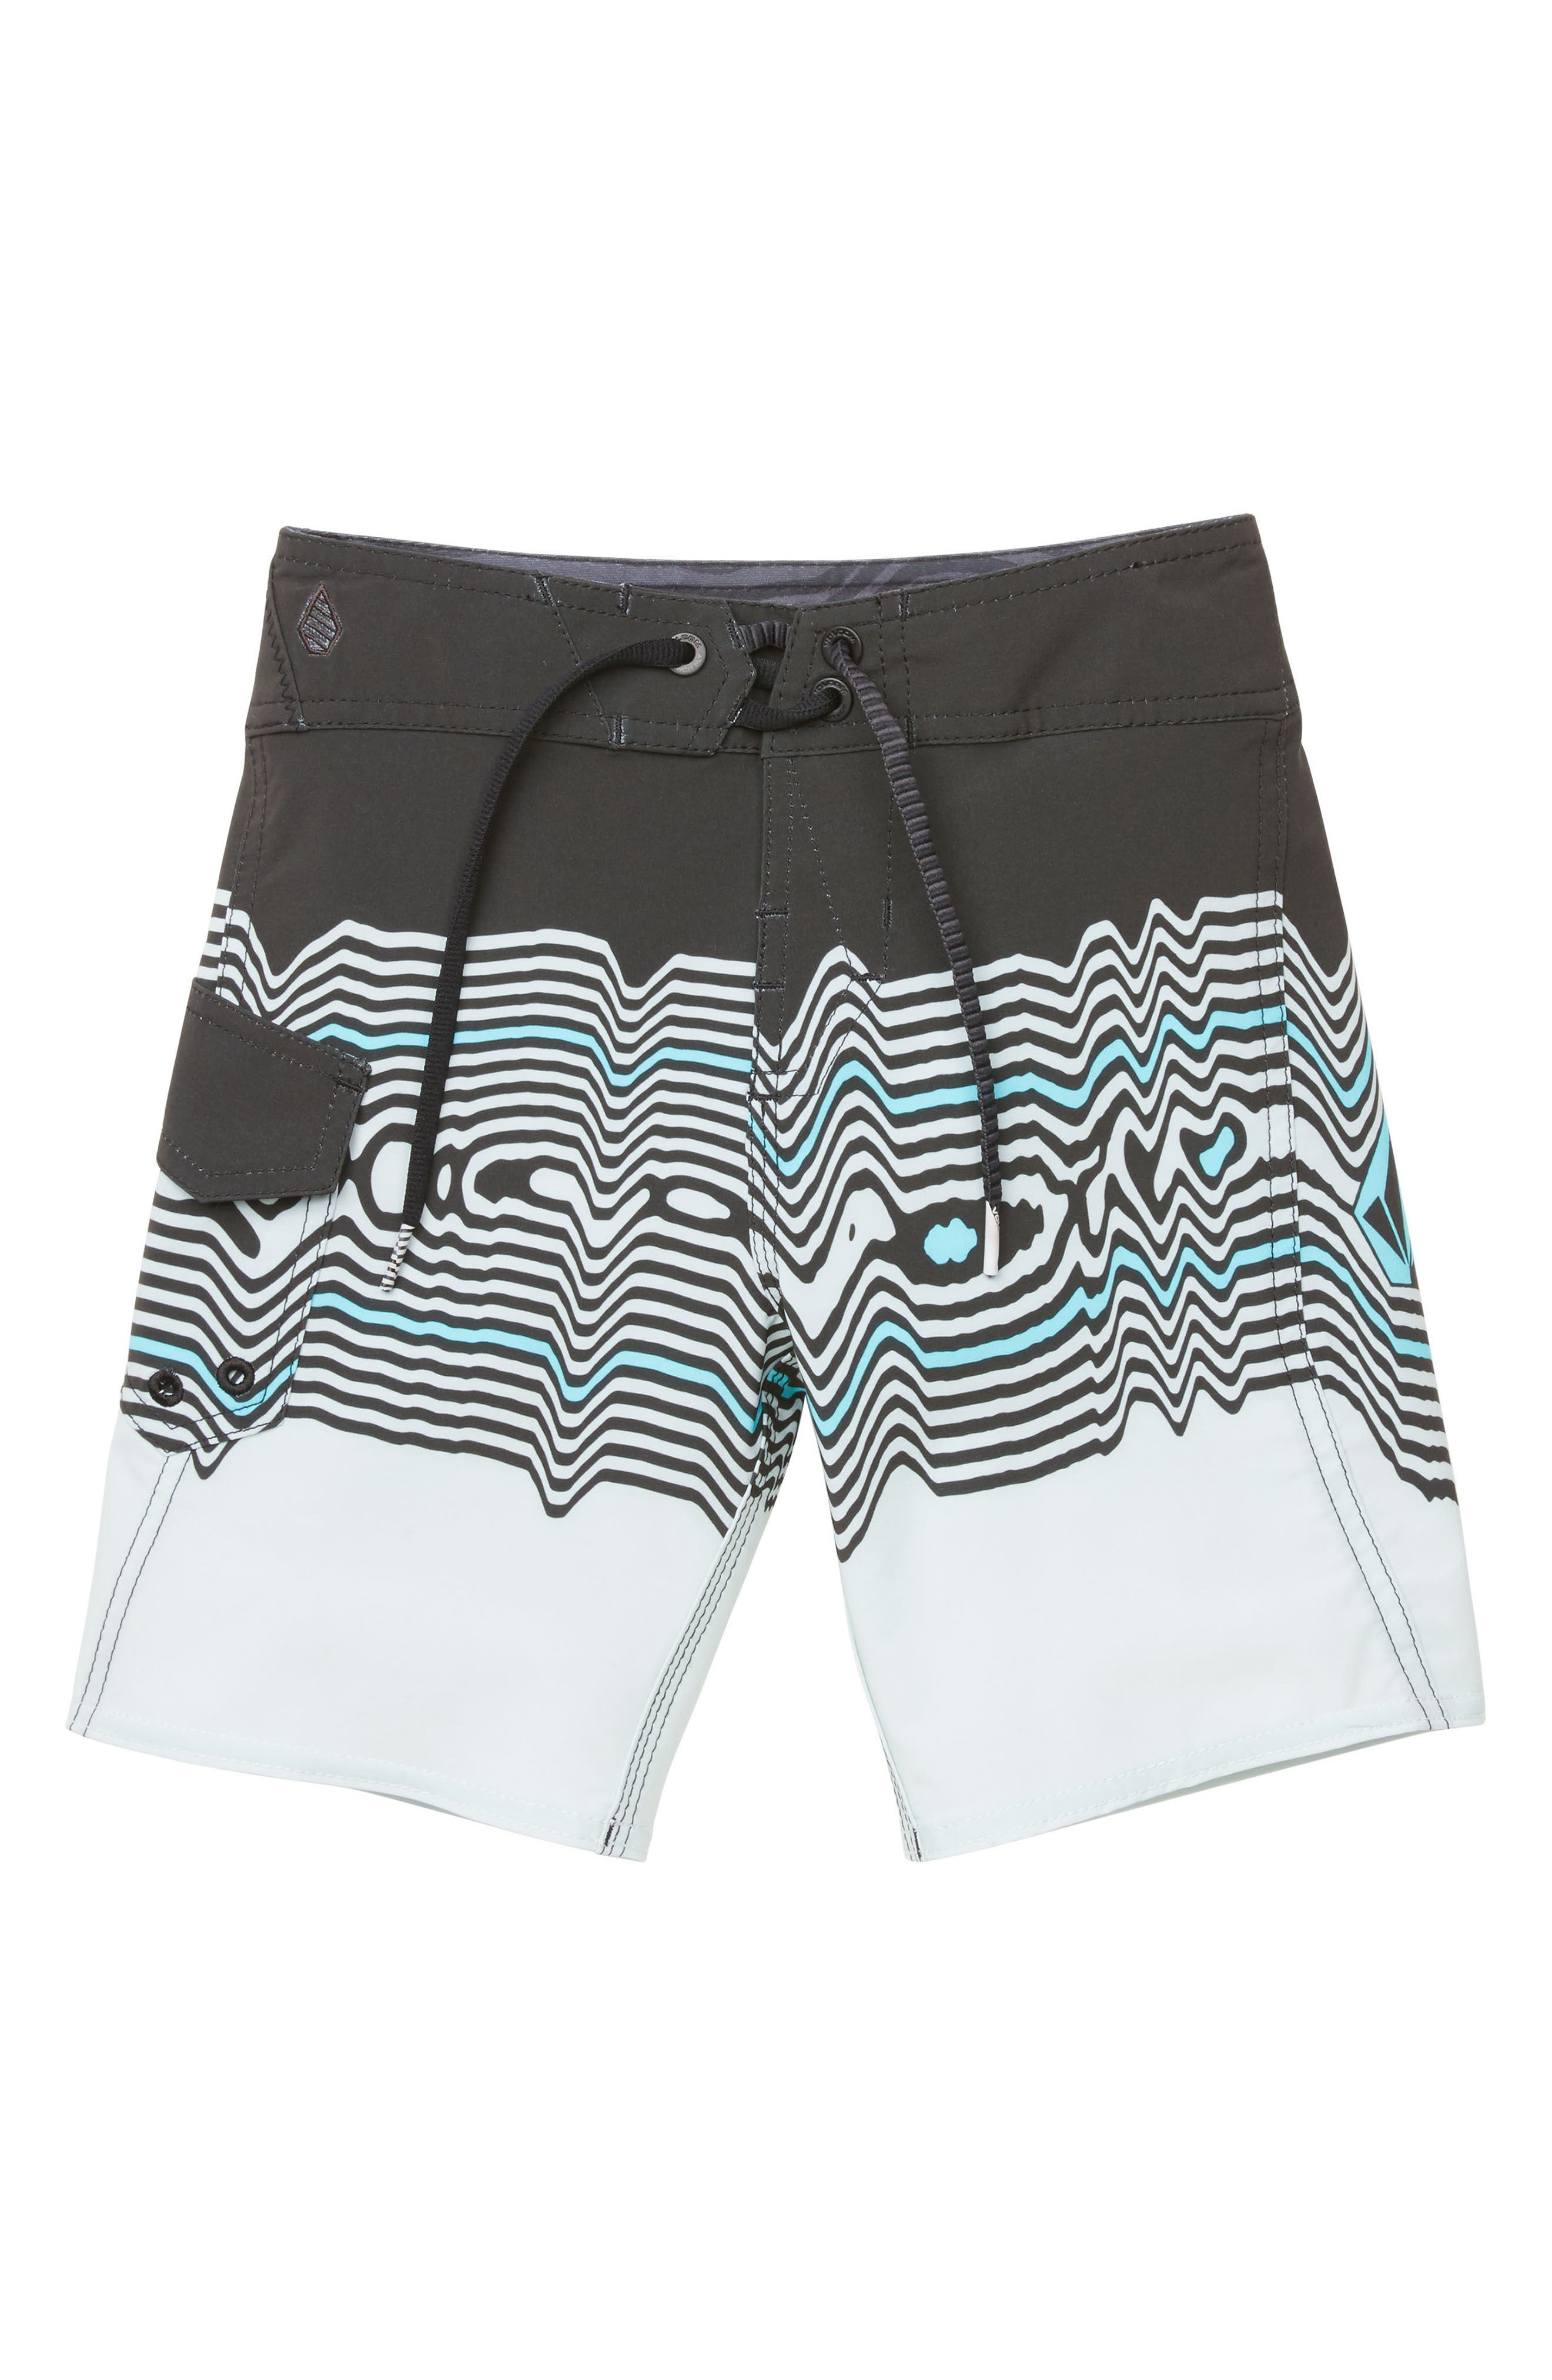 Lido Vibes Mod Board Shorts,                         Main,                         color, STEALTH